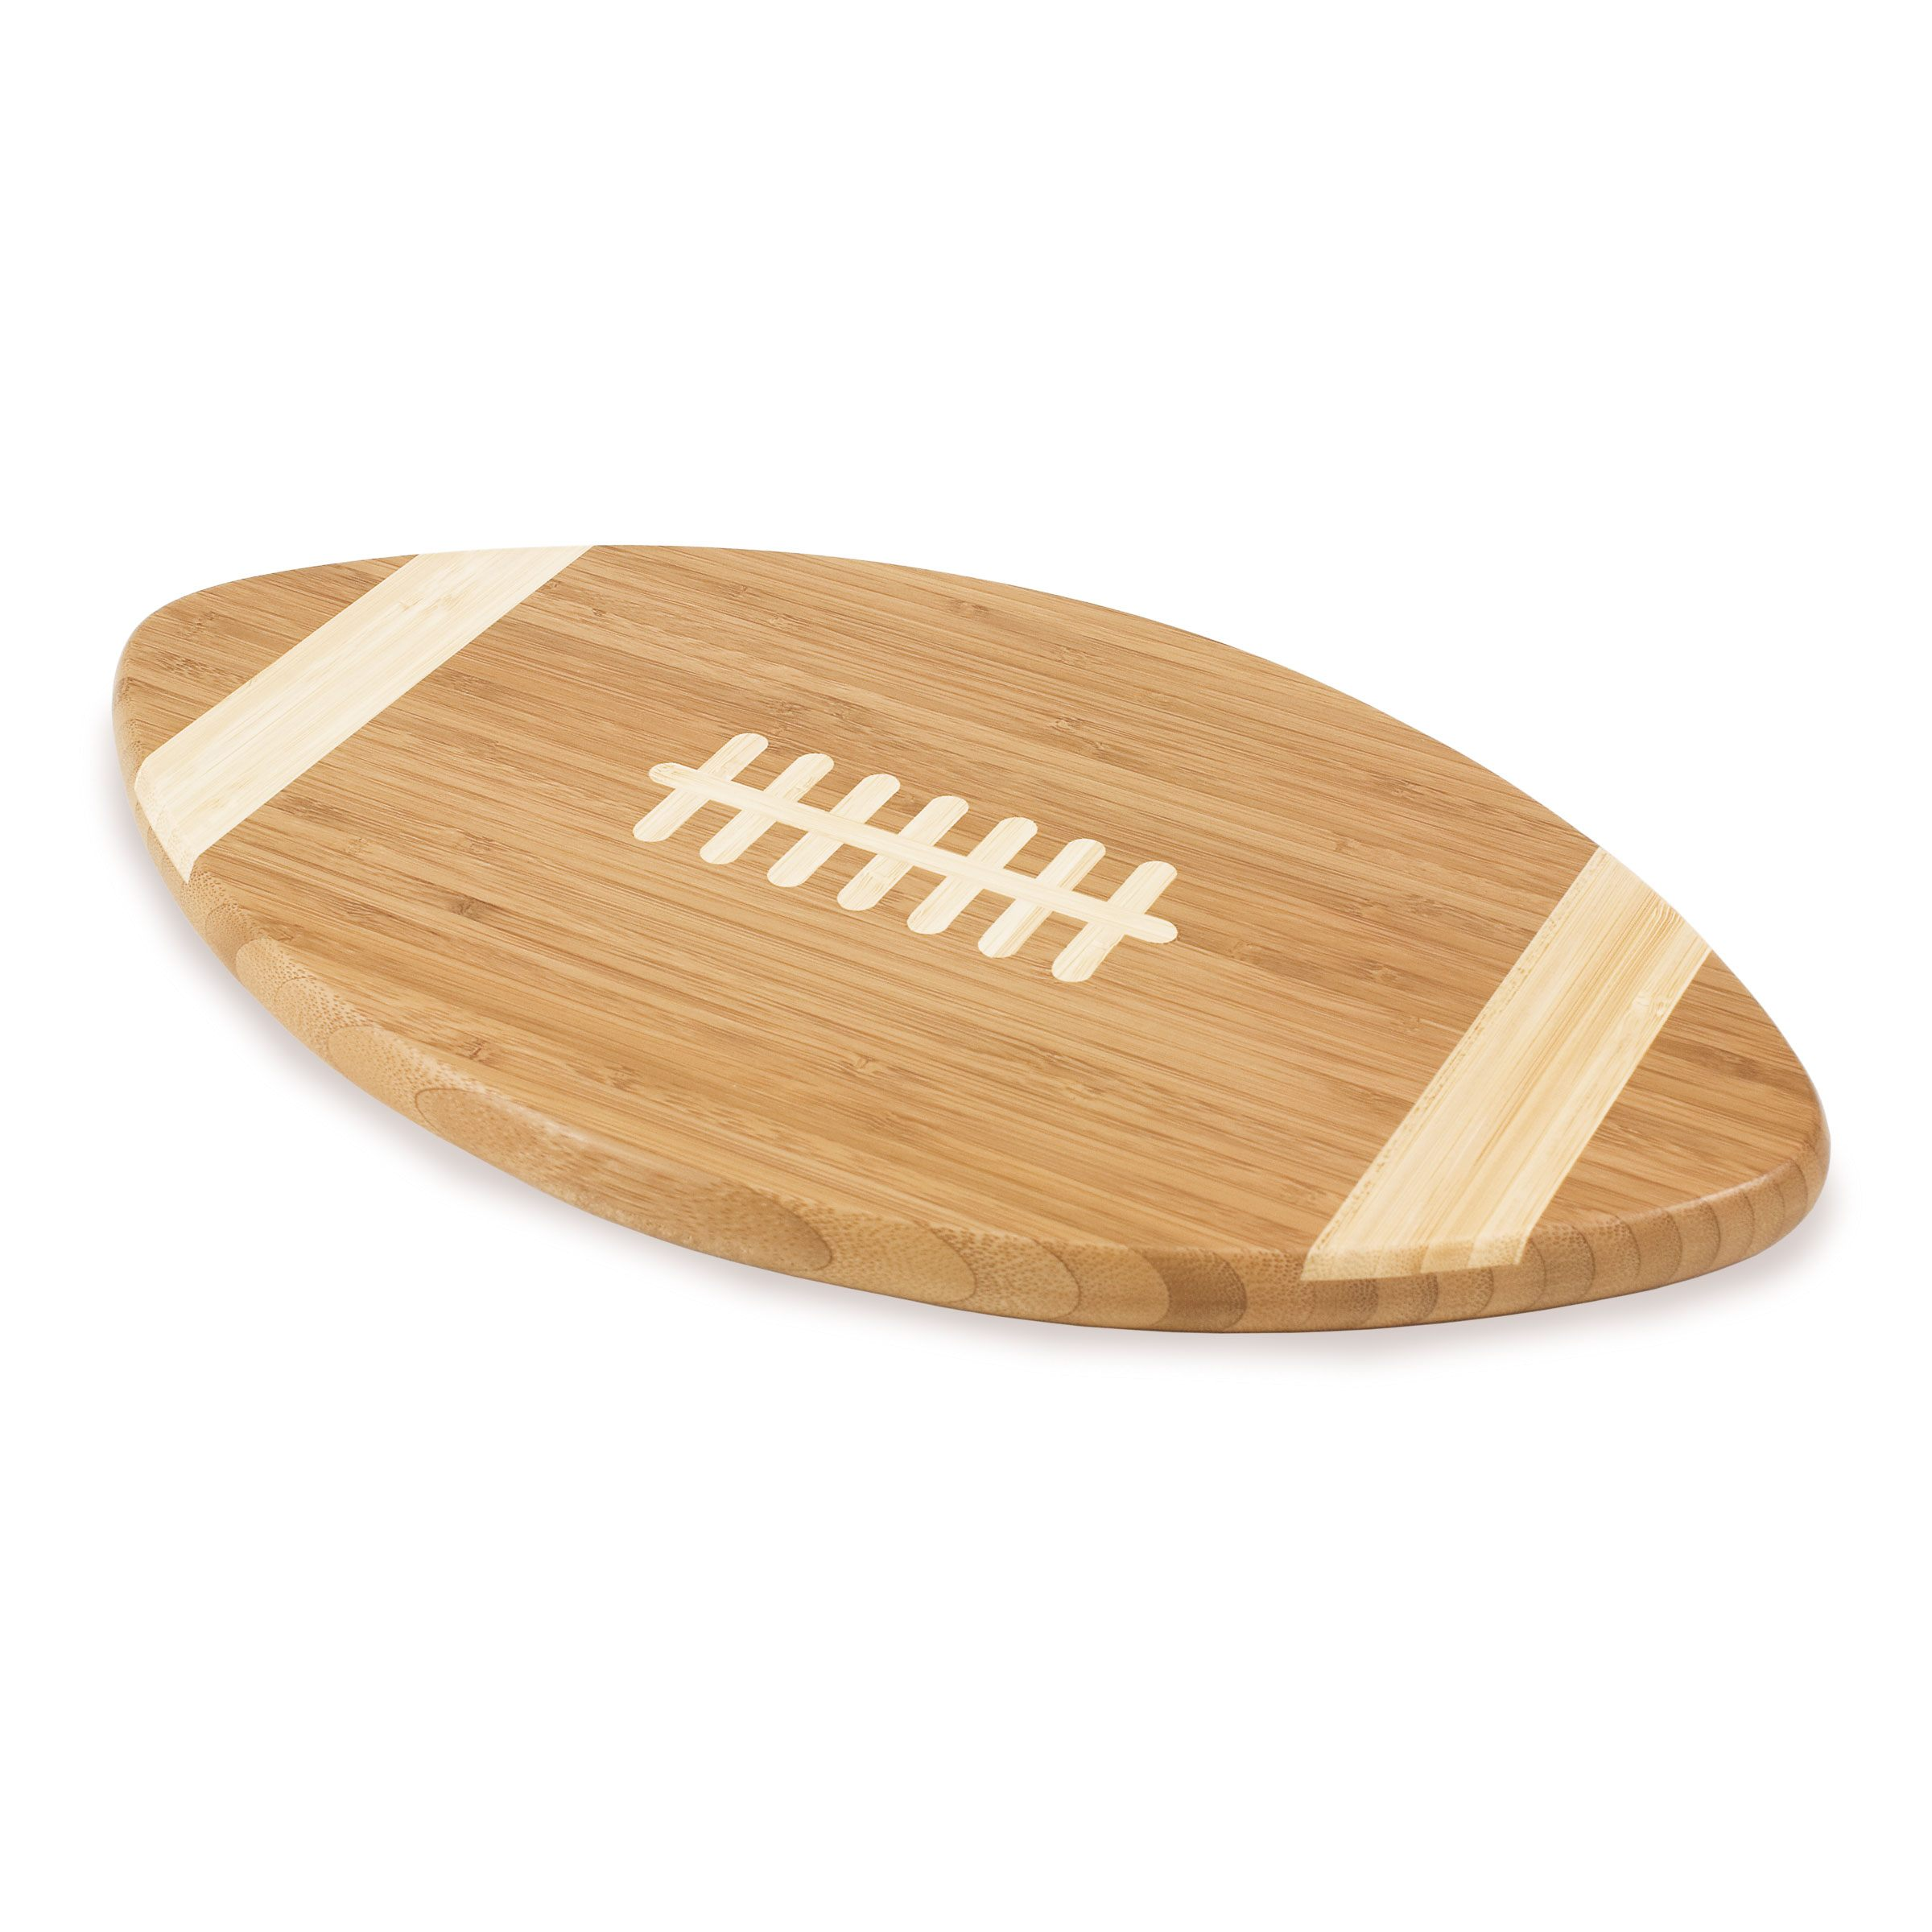 Touchdown! Cutting Board